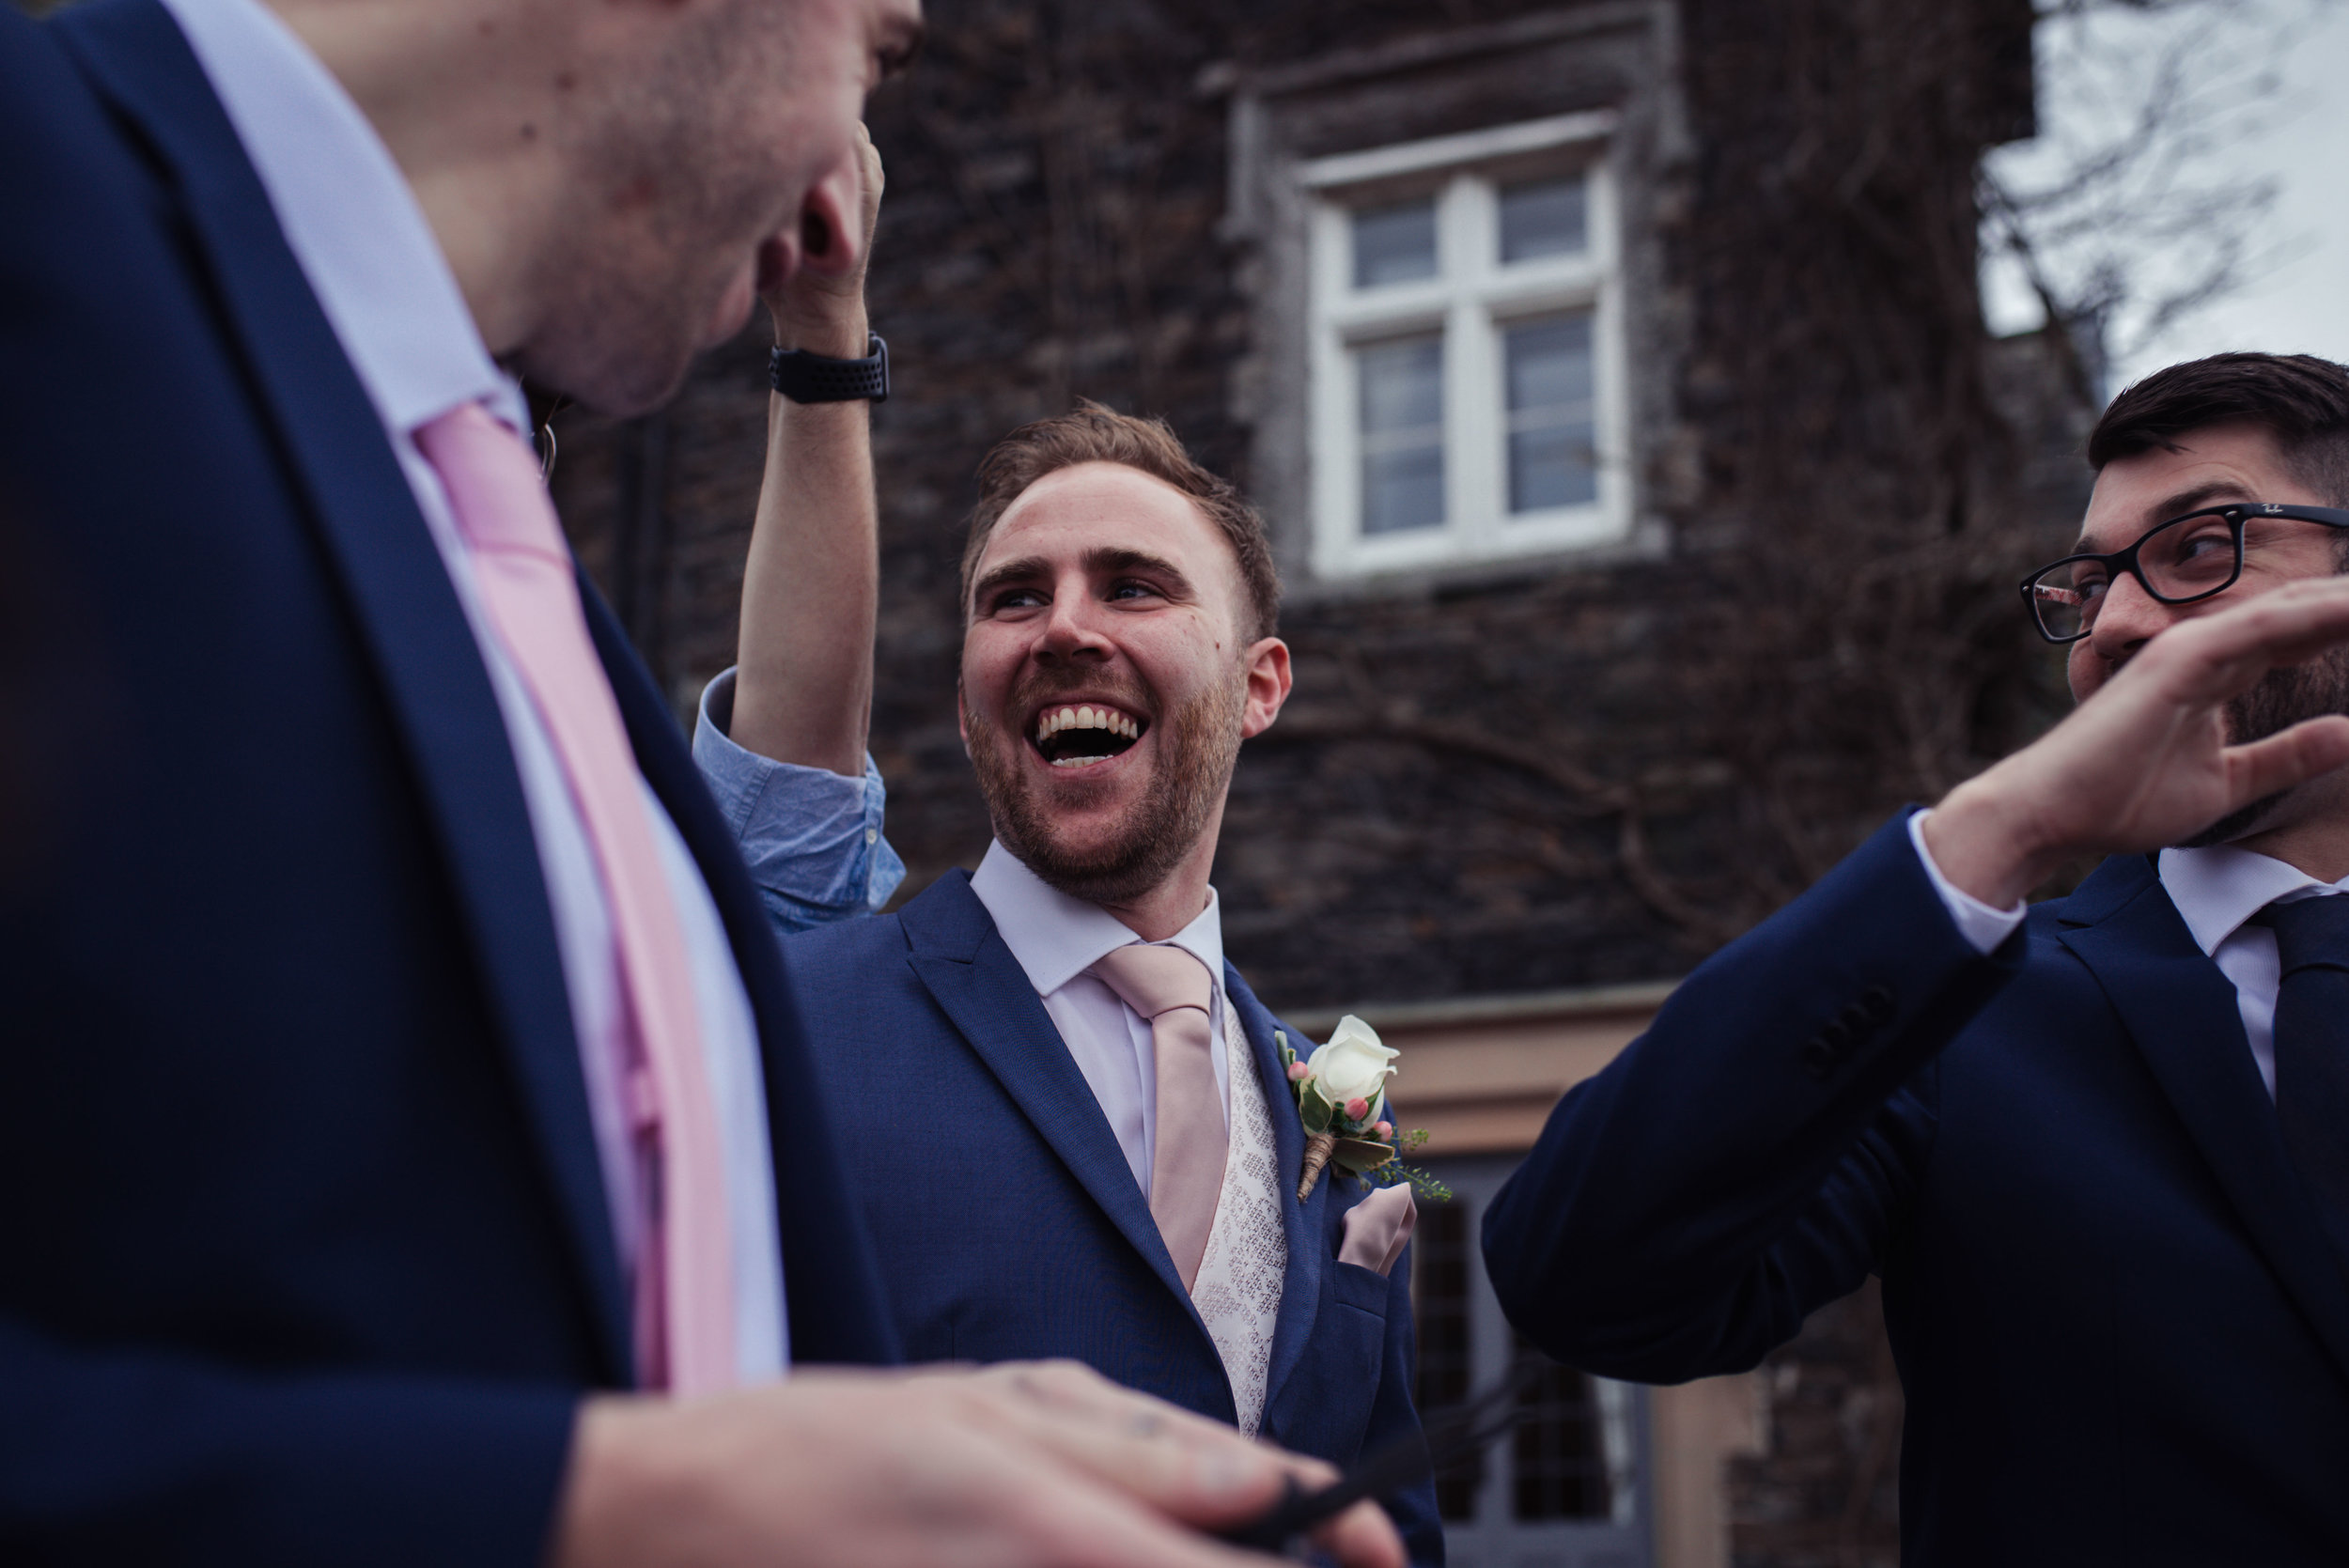 The brother of the bride laughing his head off